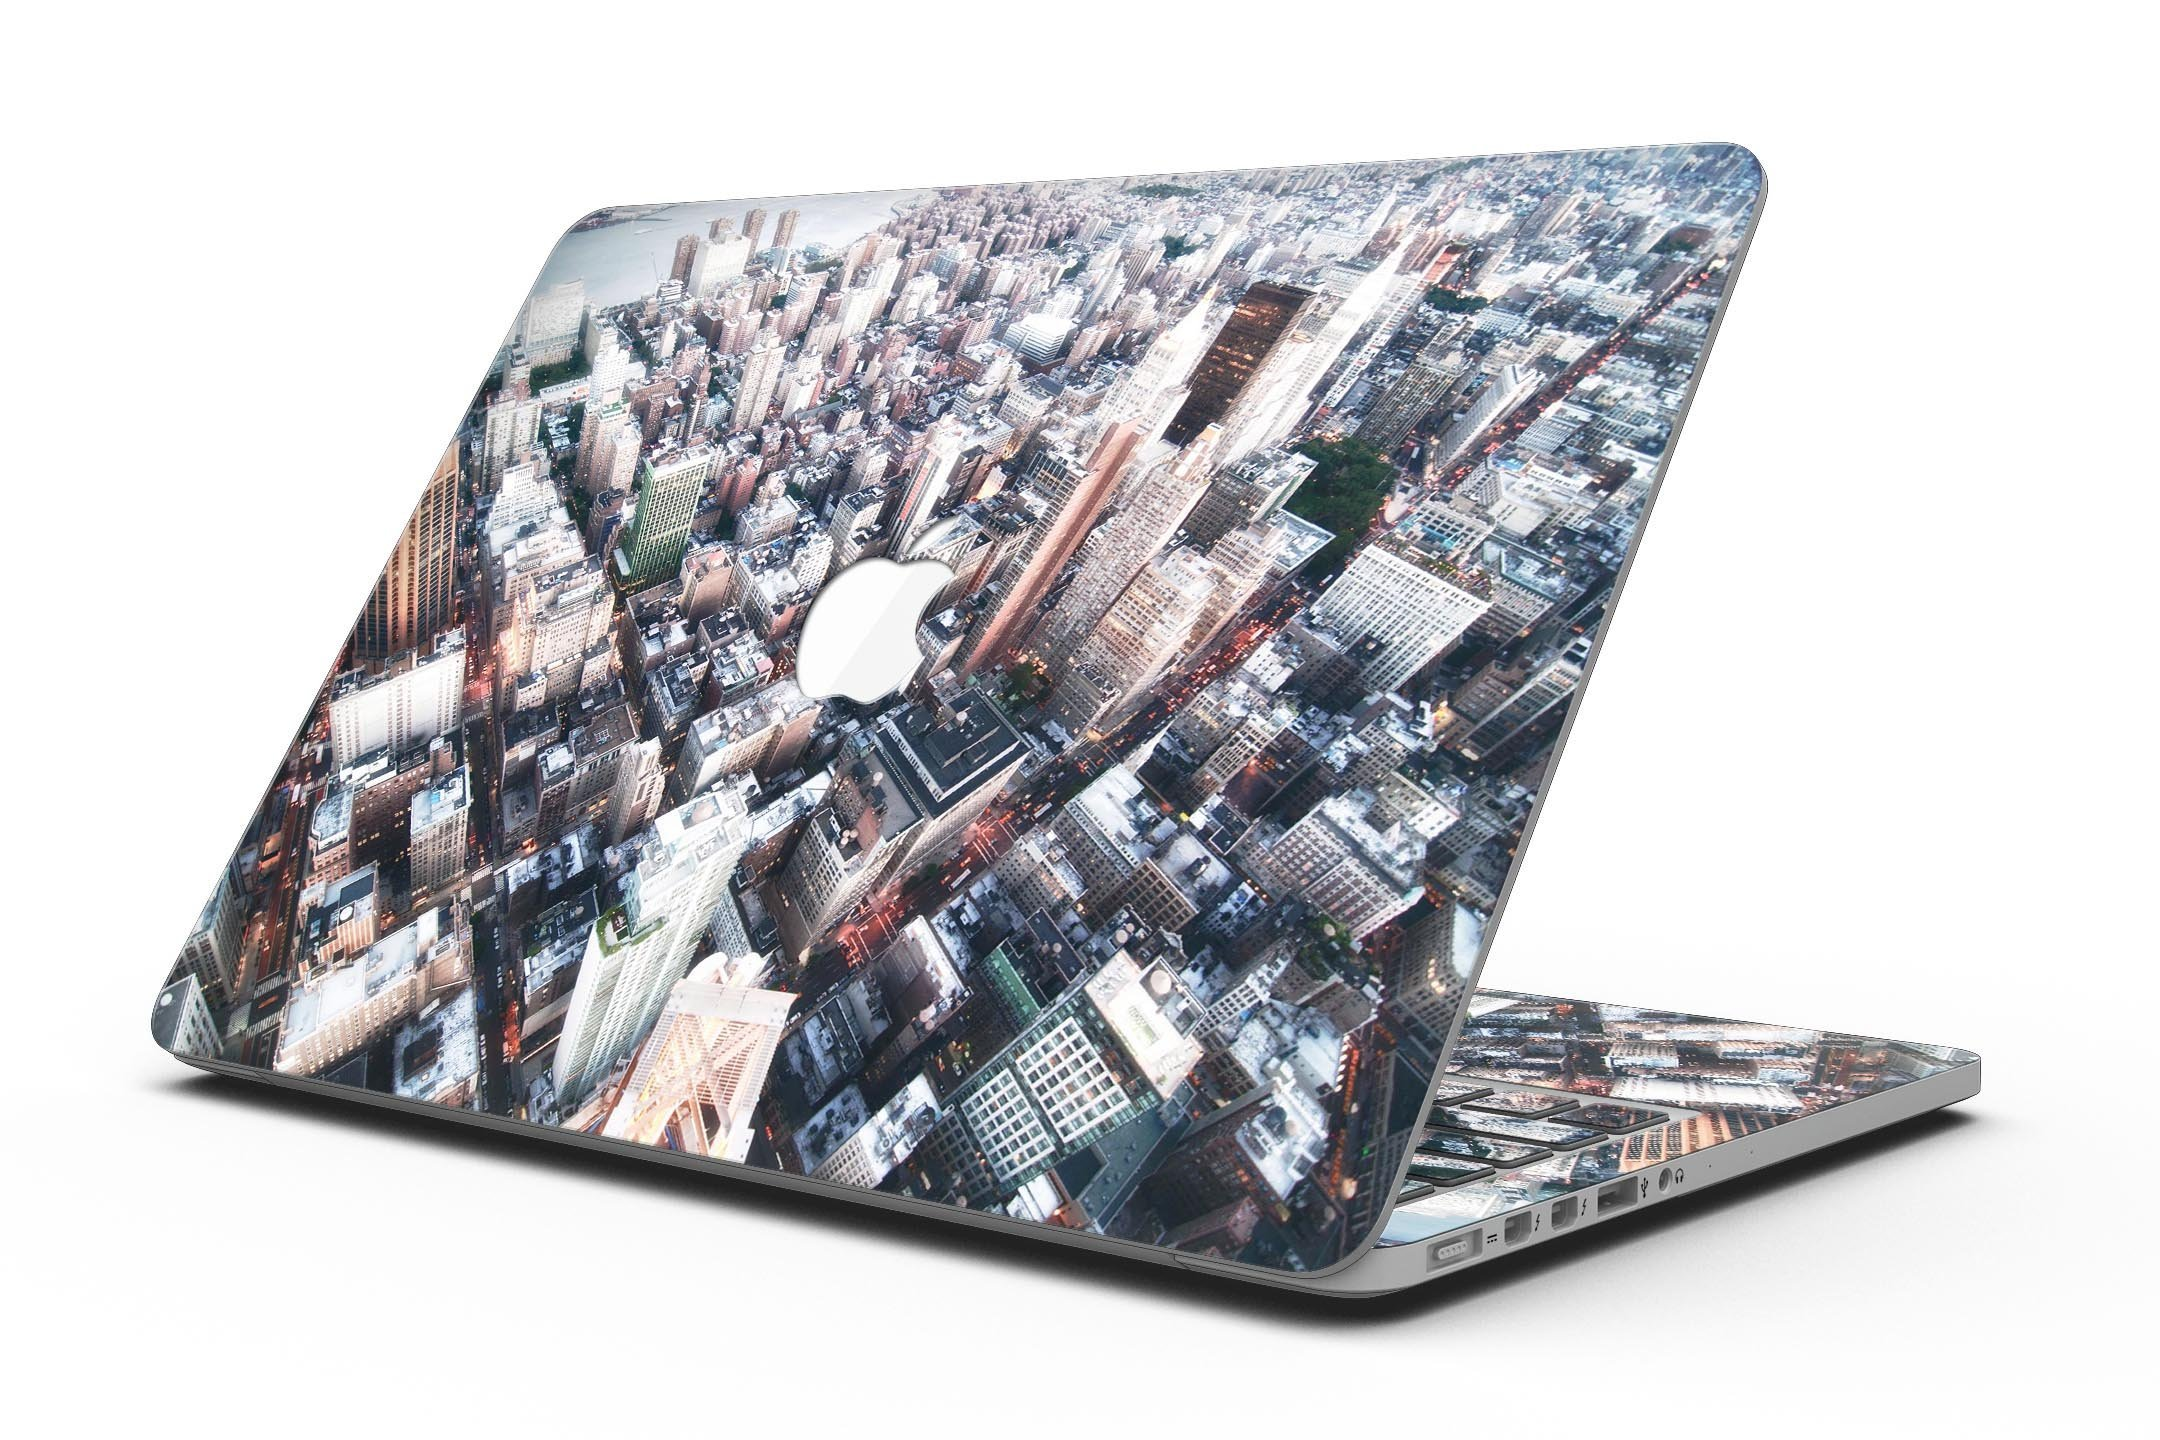 Vintage Aerial Cityscape - MacBook Pro with Retina Display Full-Coverage Skin Kit by iiRov (Image #1)